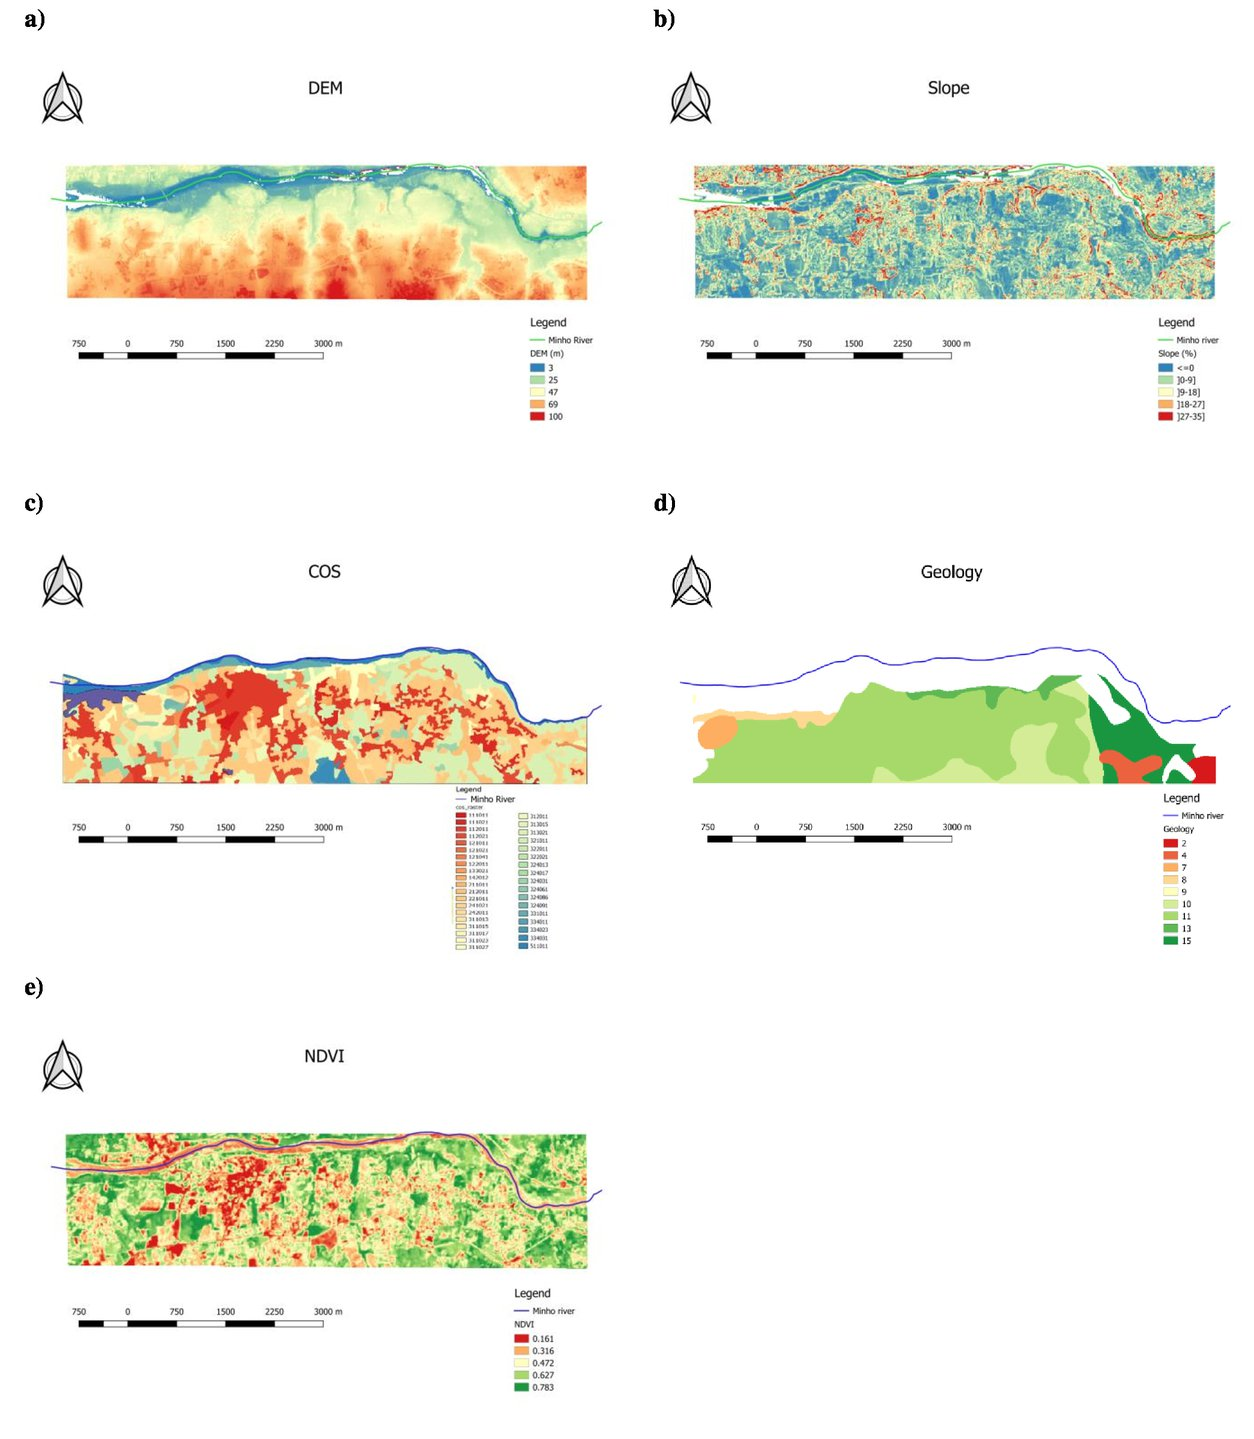 GIS and remote sensing based method to extract fluvial